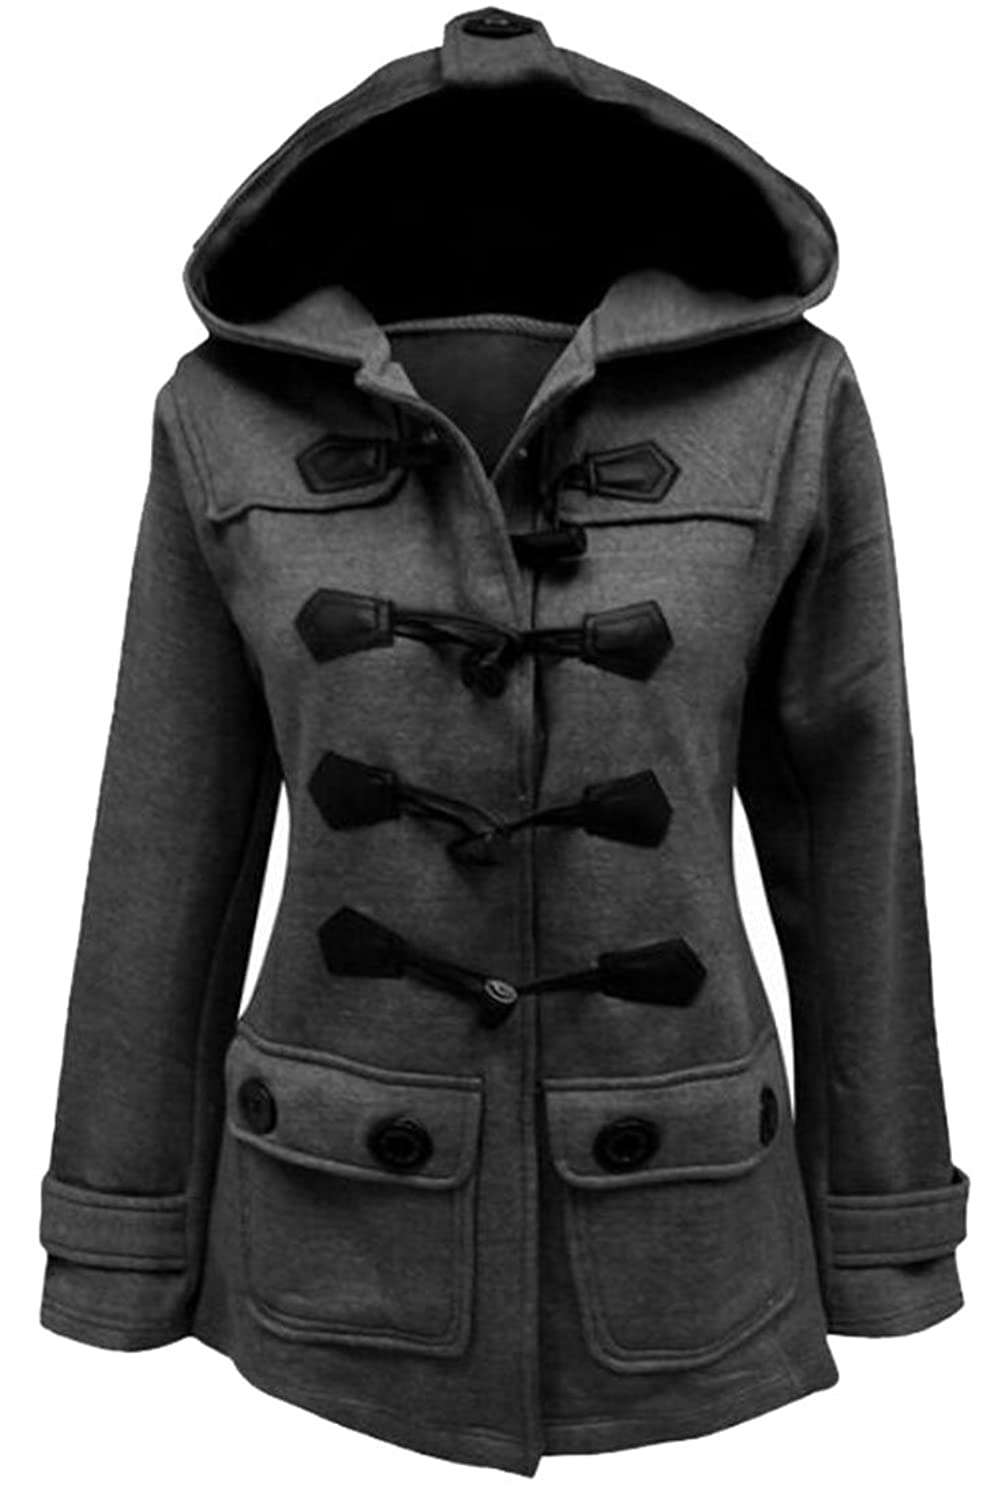 ARRIVE GUIDE Womens Casual Loose Button Hooded Thicked Trench Jacket Coat